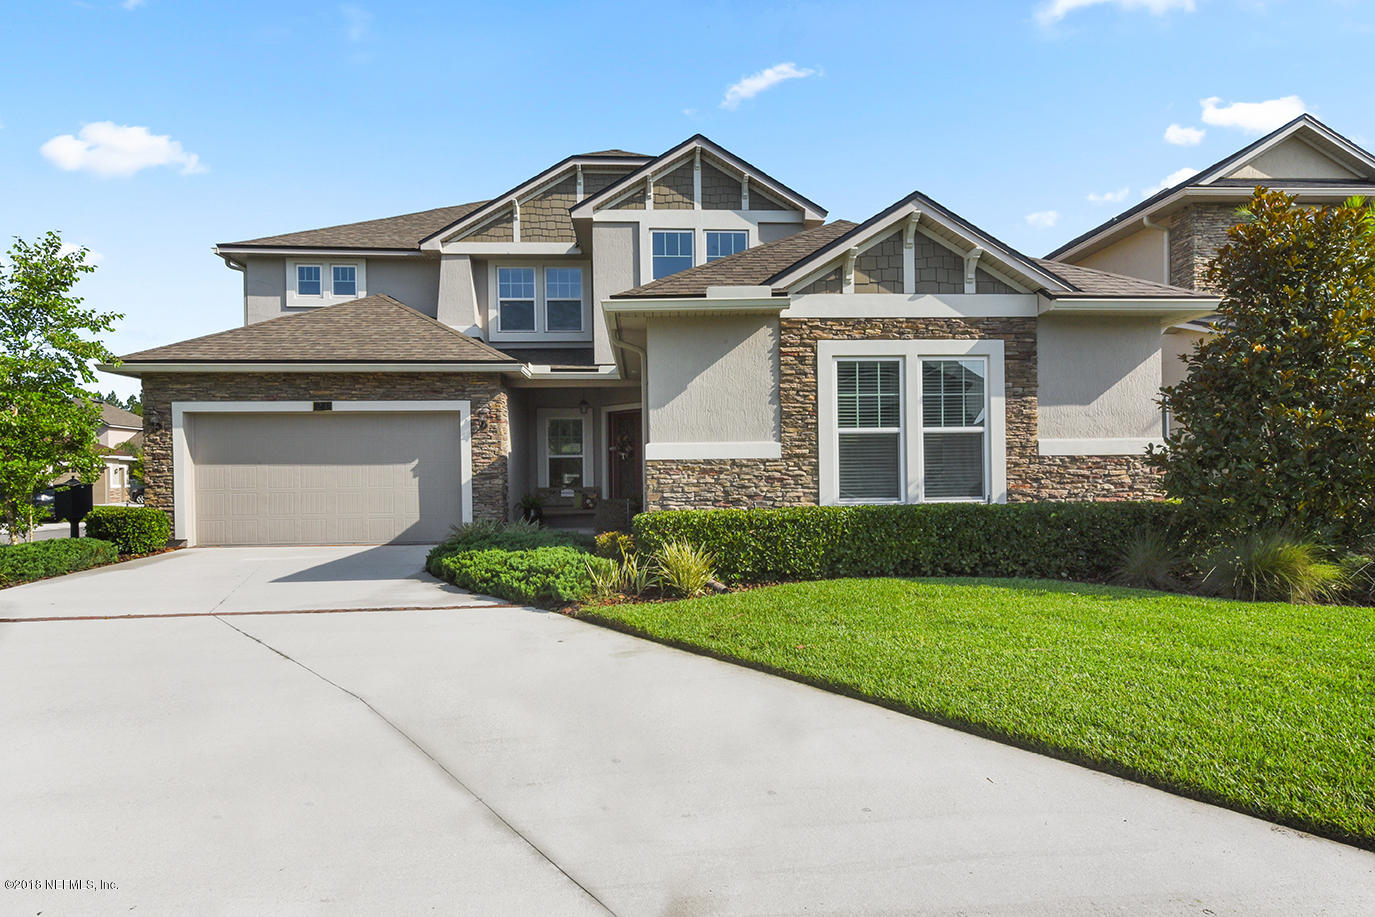 21 TENPIN, ST JOHNS, FLORIDA 32259, 5 Bedrooms Bedrooms, ,4 BathroomsBathrooms,Residential - single family,For sale,TENPIN,961968